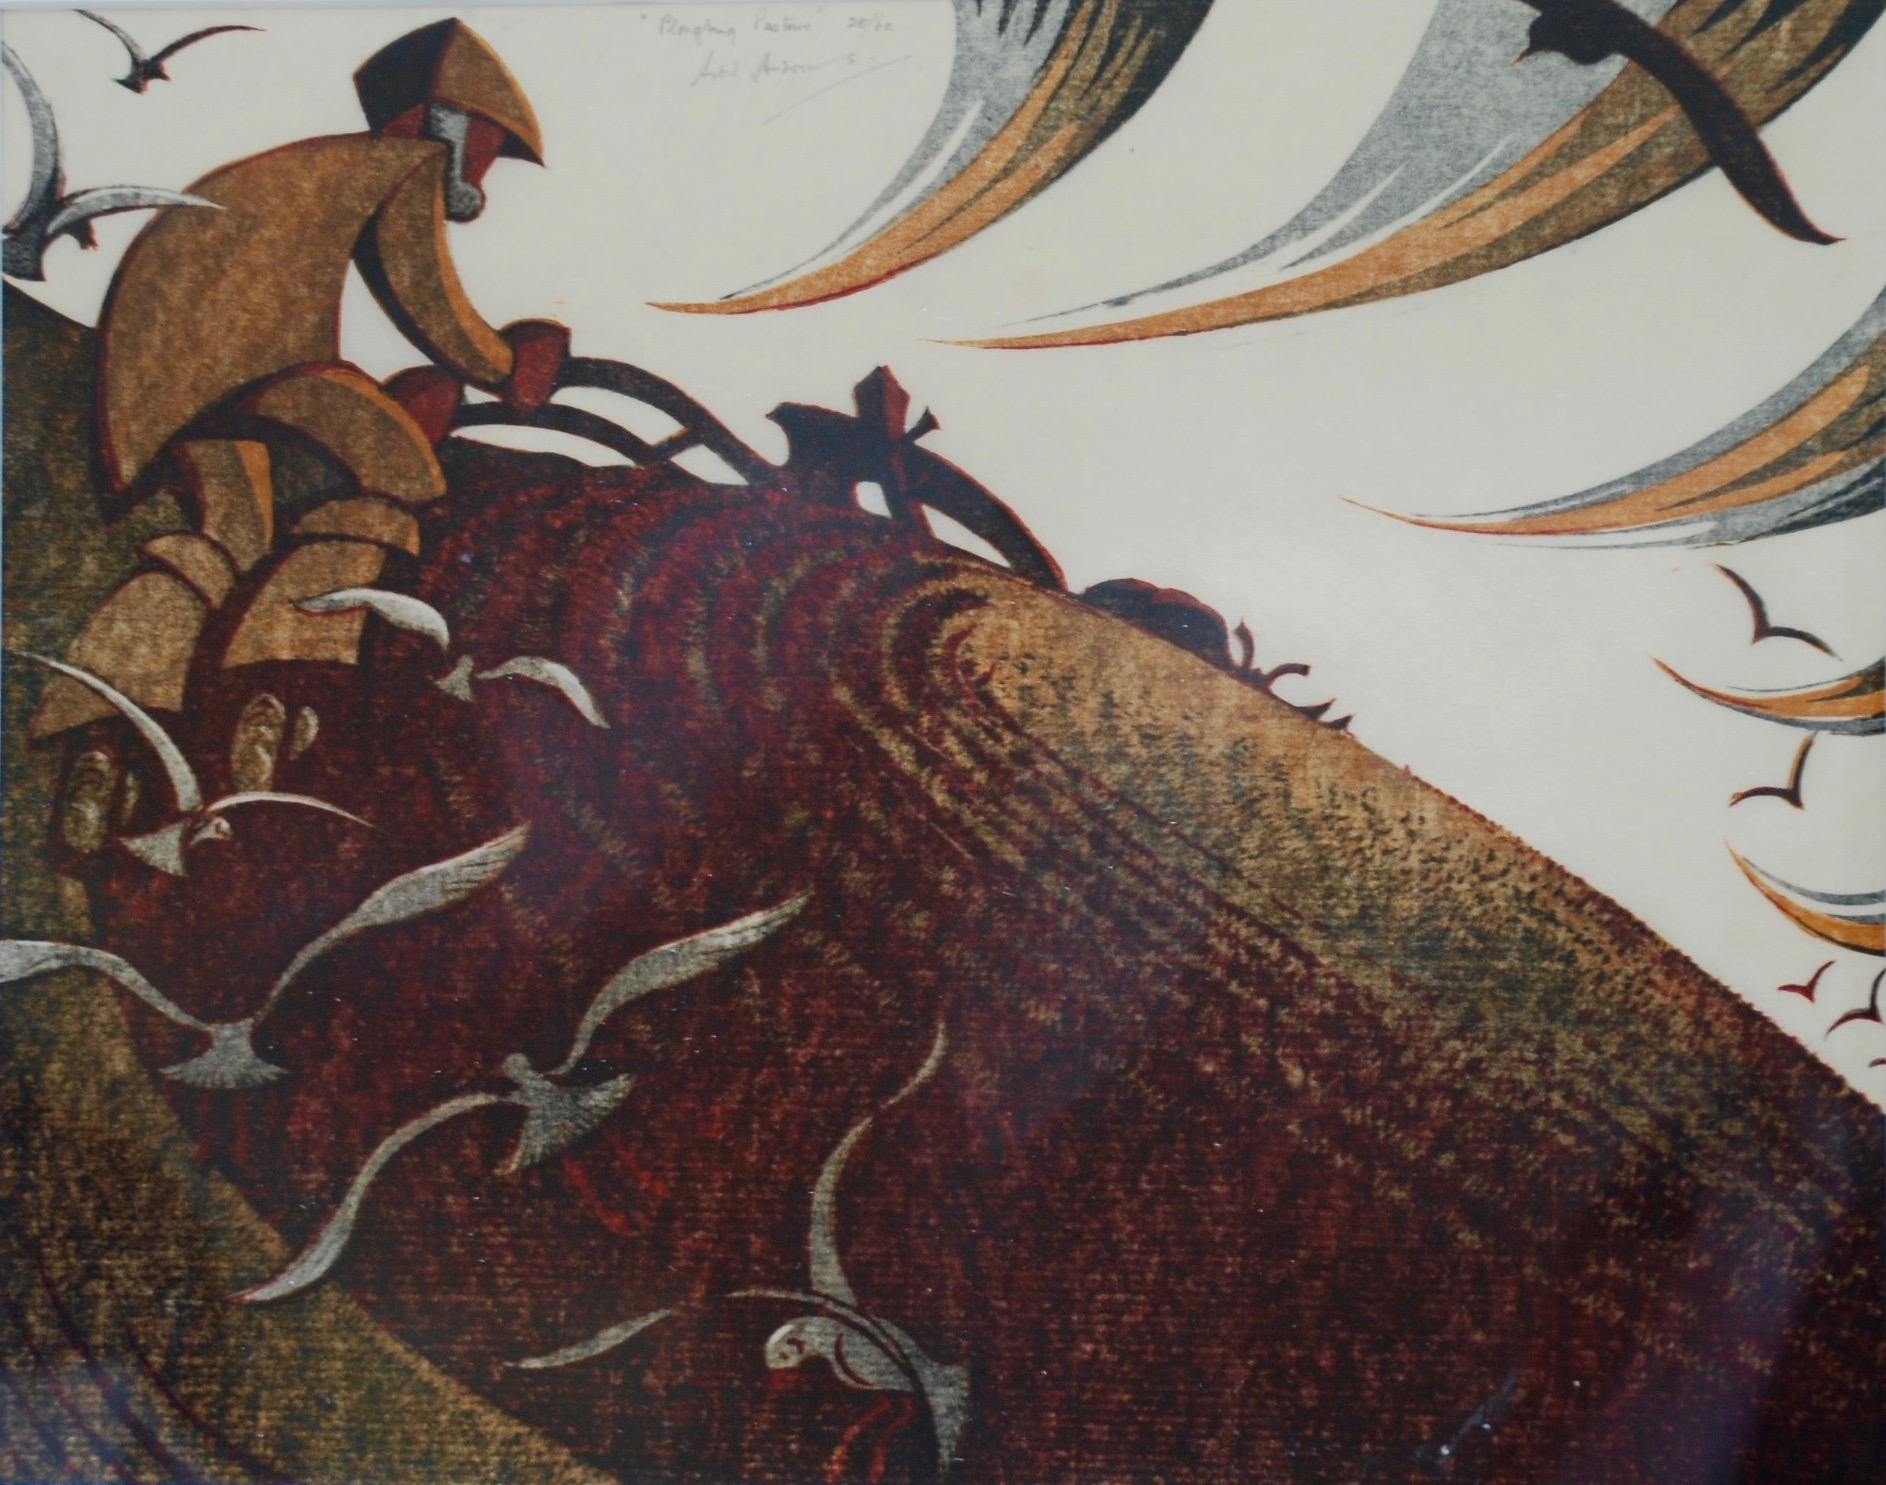 Sybil Andrews, Ploughing Pasture, 1954